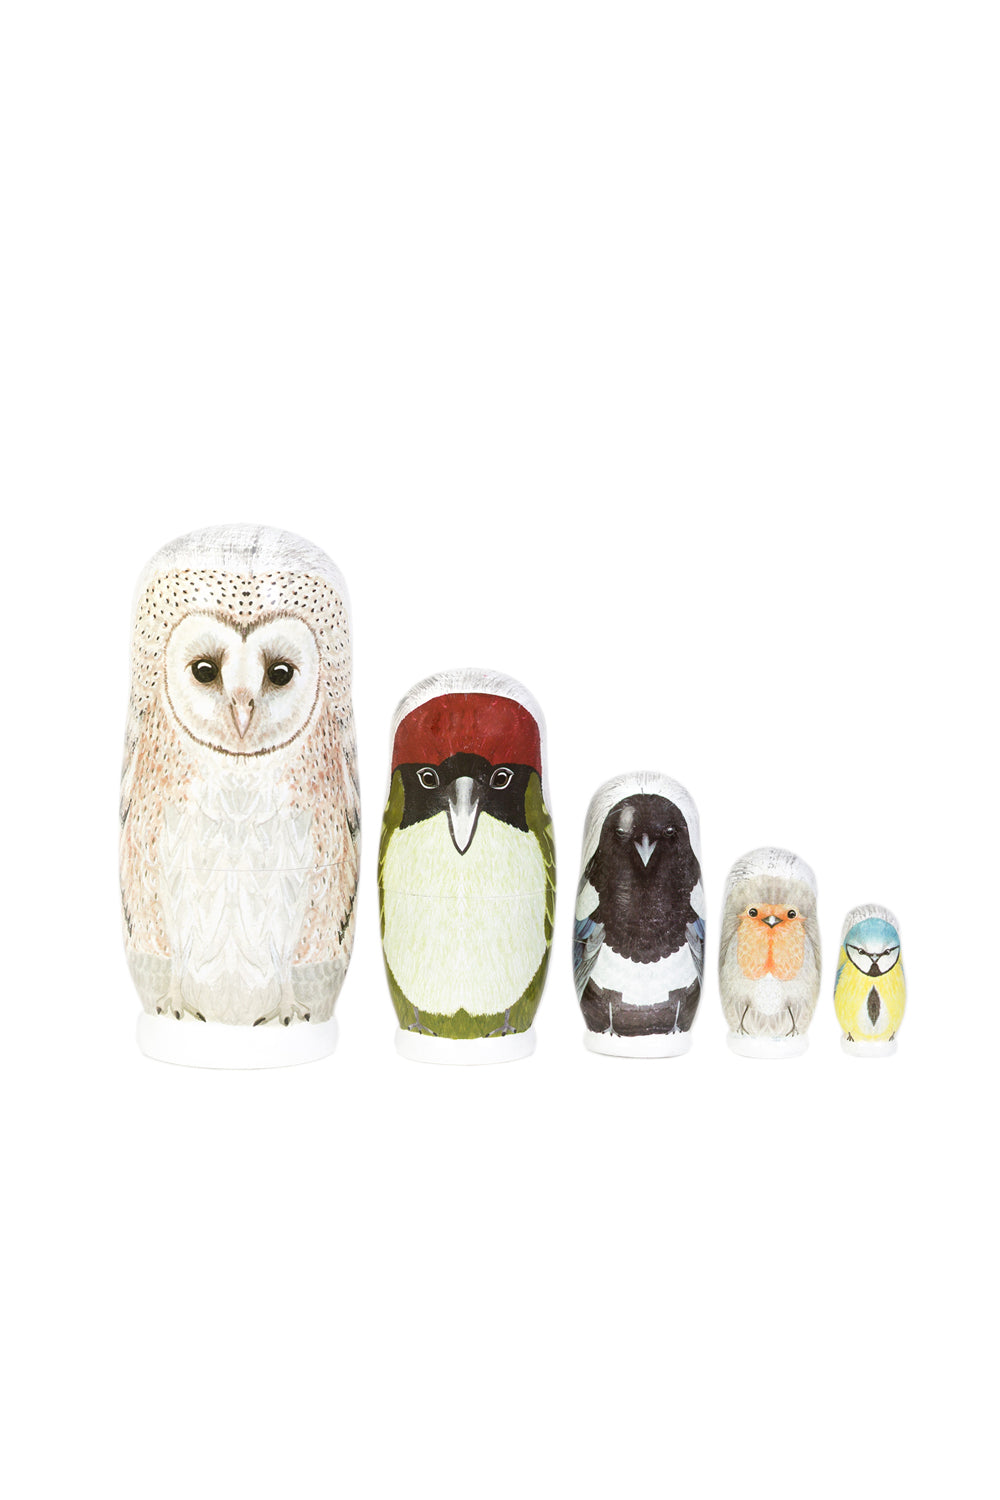 Decorative nesting dolls | British birds| Marmalade Lion